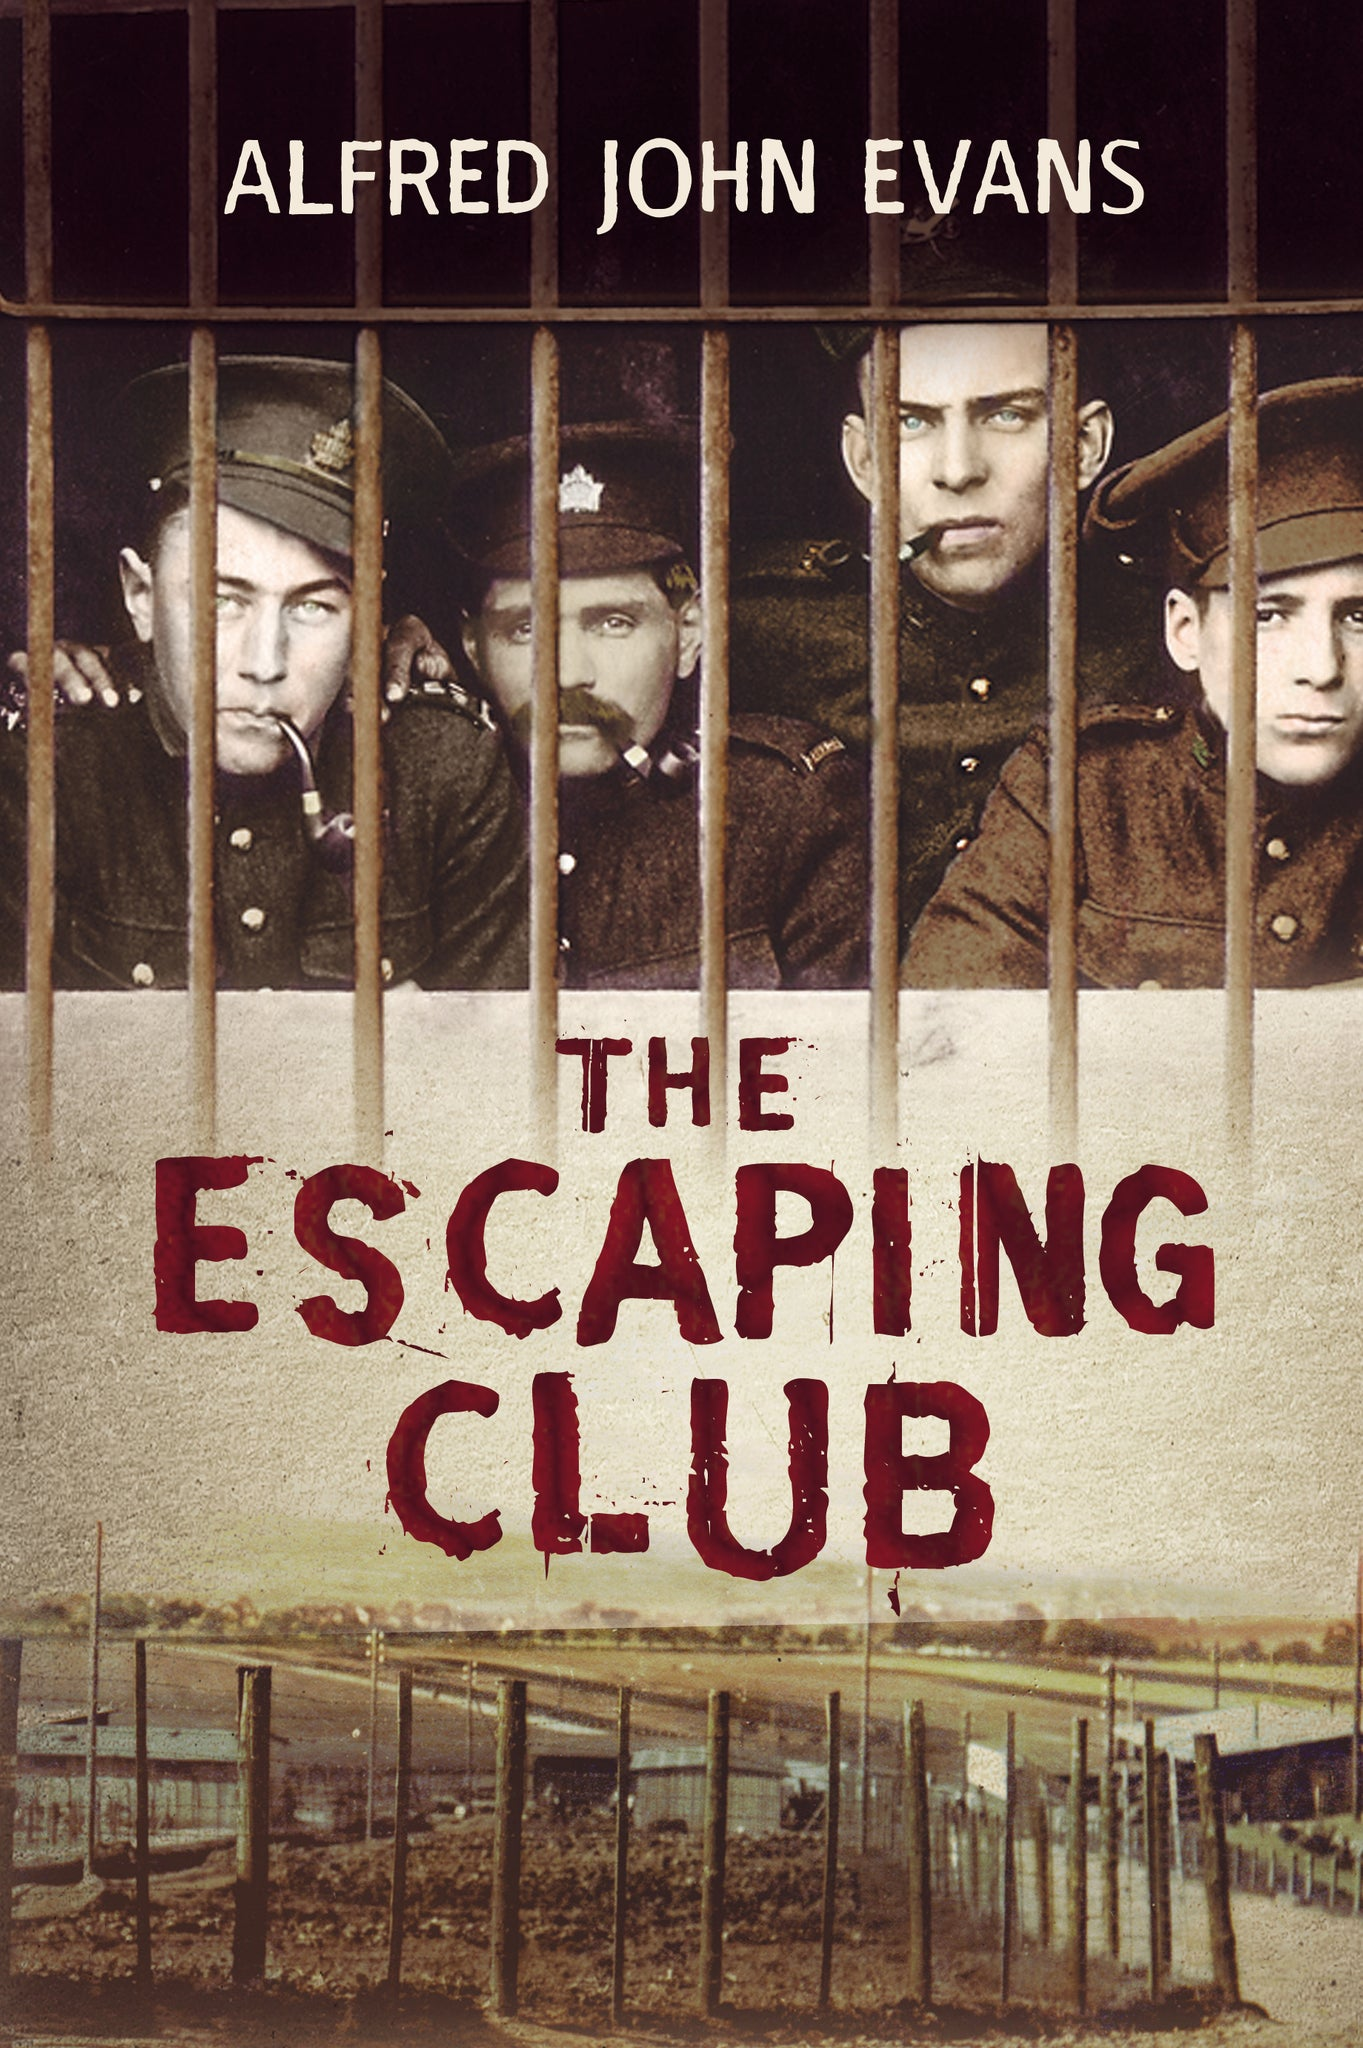 The Escaping Club - published by Fonthill Media